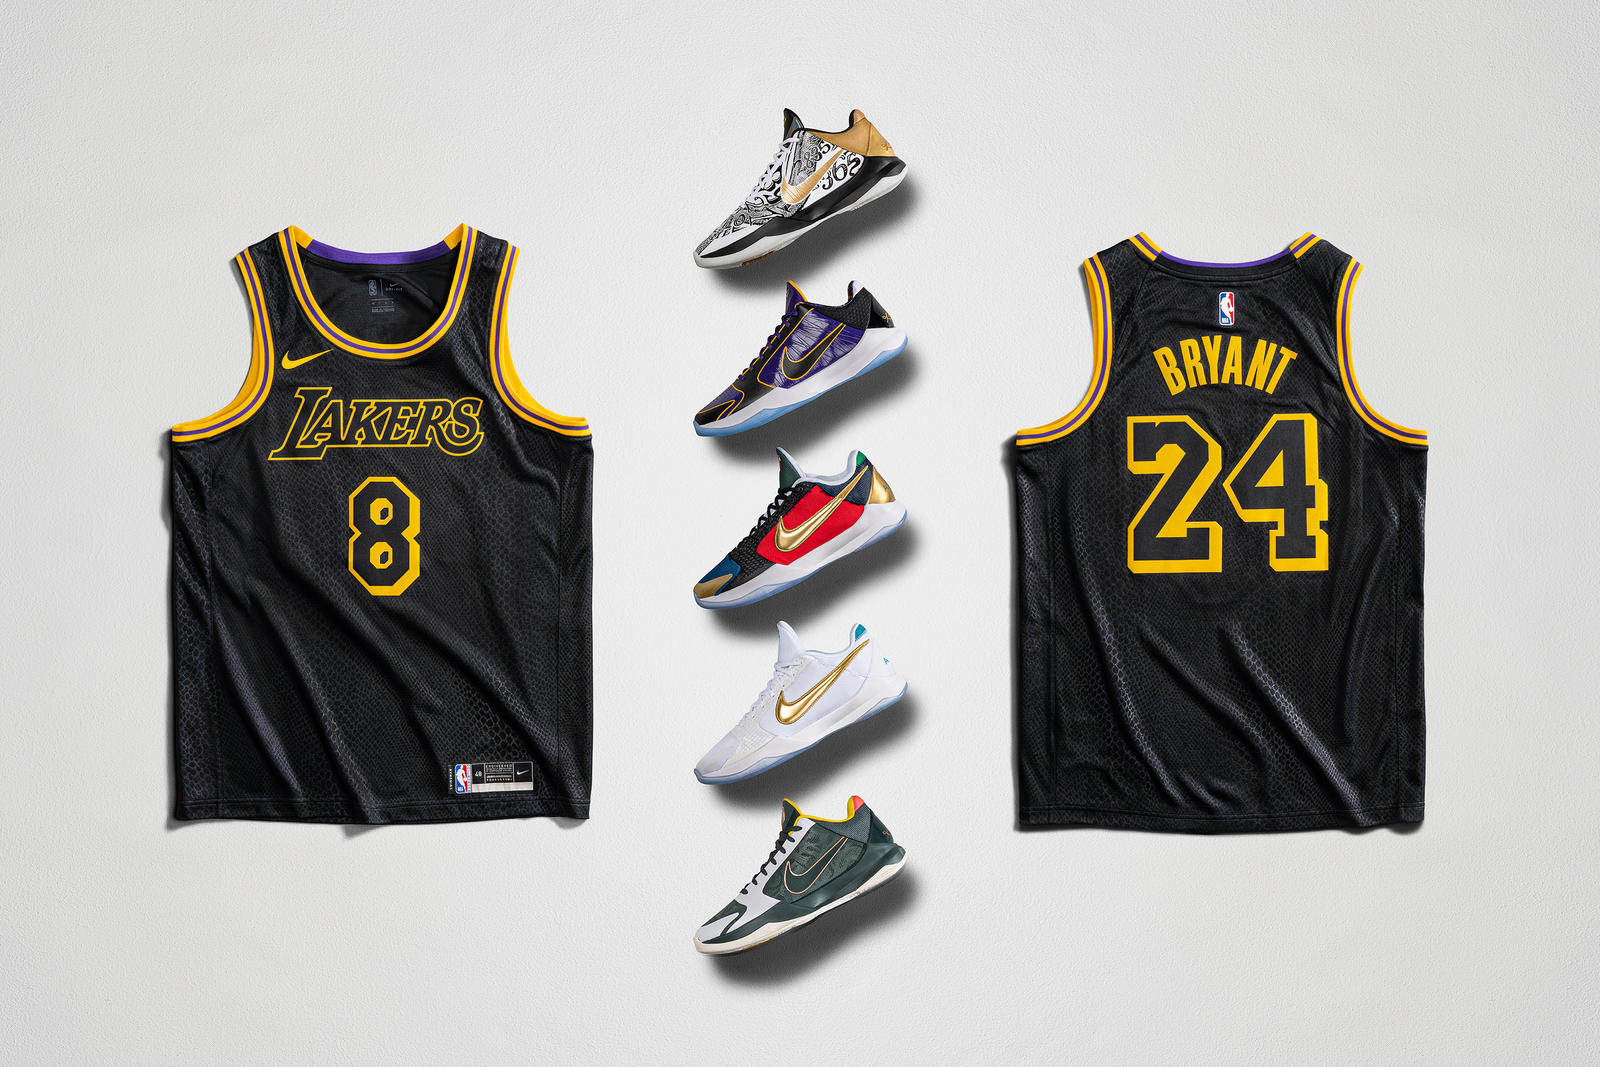 Nike's Celebrating Mamba Week In A Major Way With Limited Edition Kobe Bryant Jerseys & Sneakers